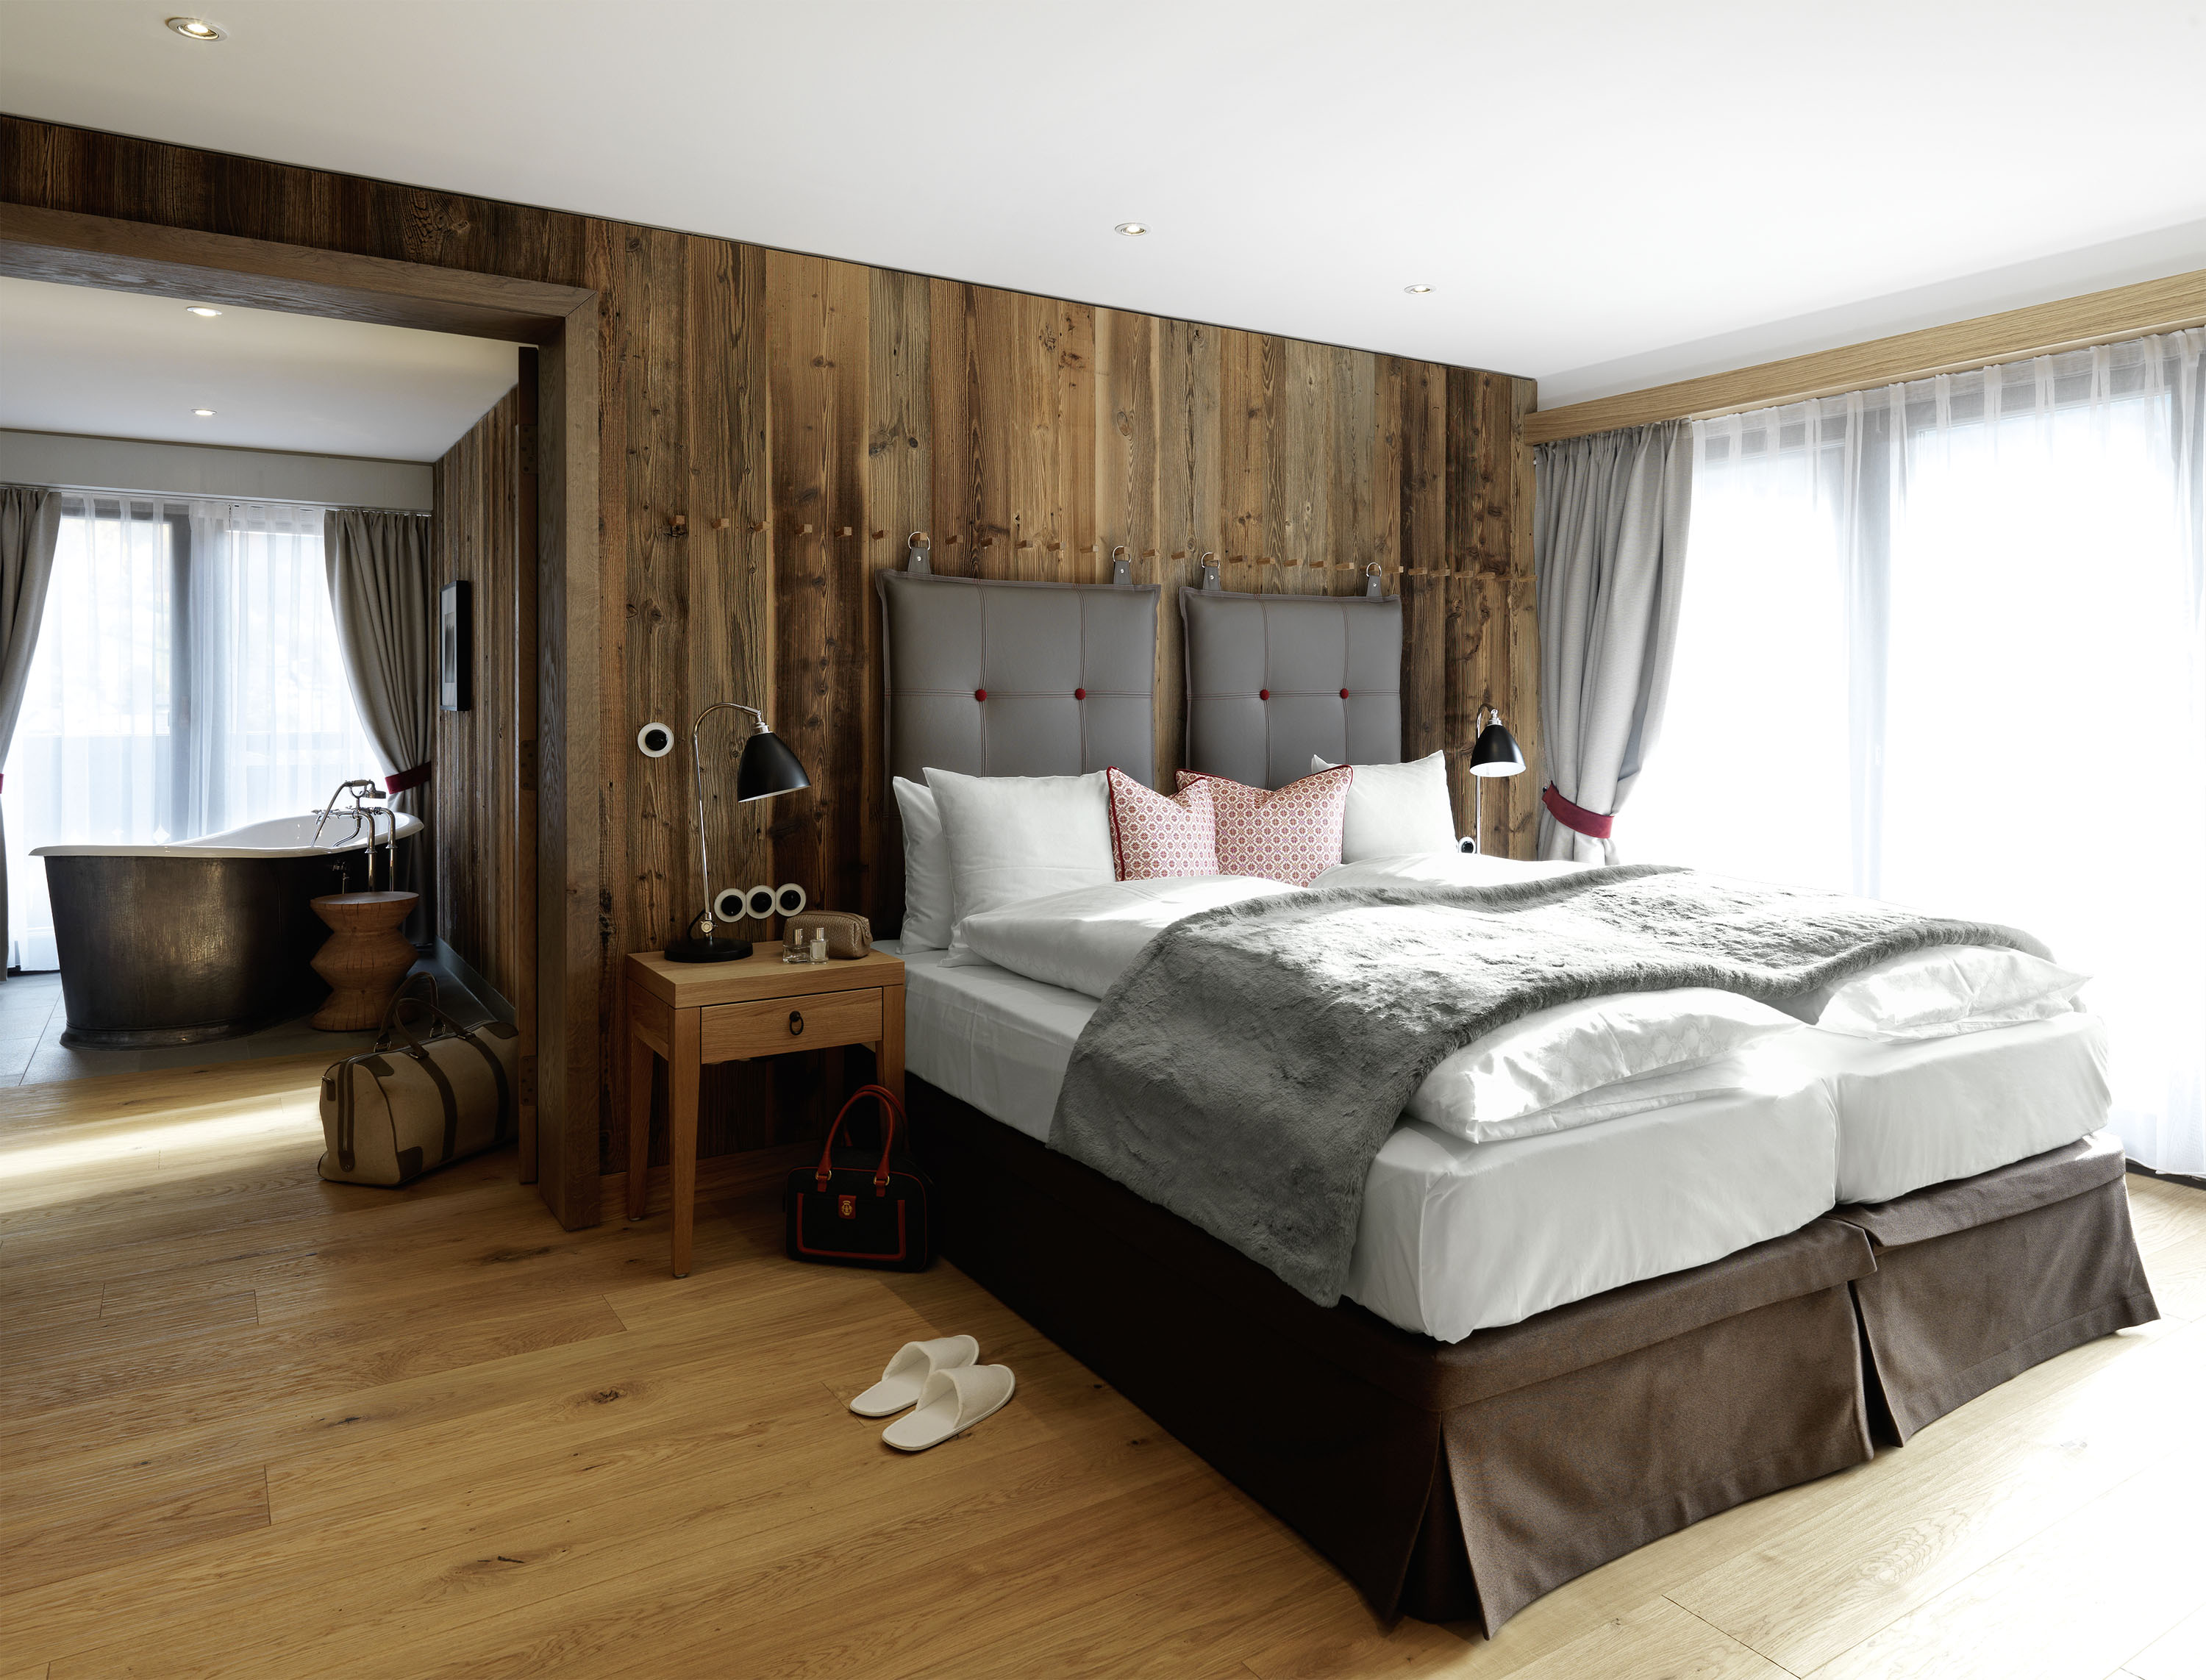 loewen hotel montafon proudmag. Black Bedroom Furniture Sets. Home Design Ideas